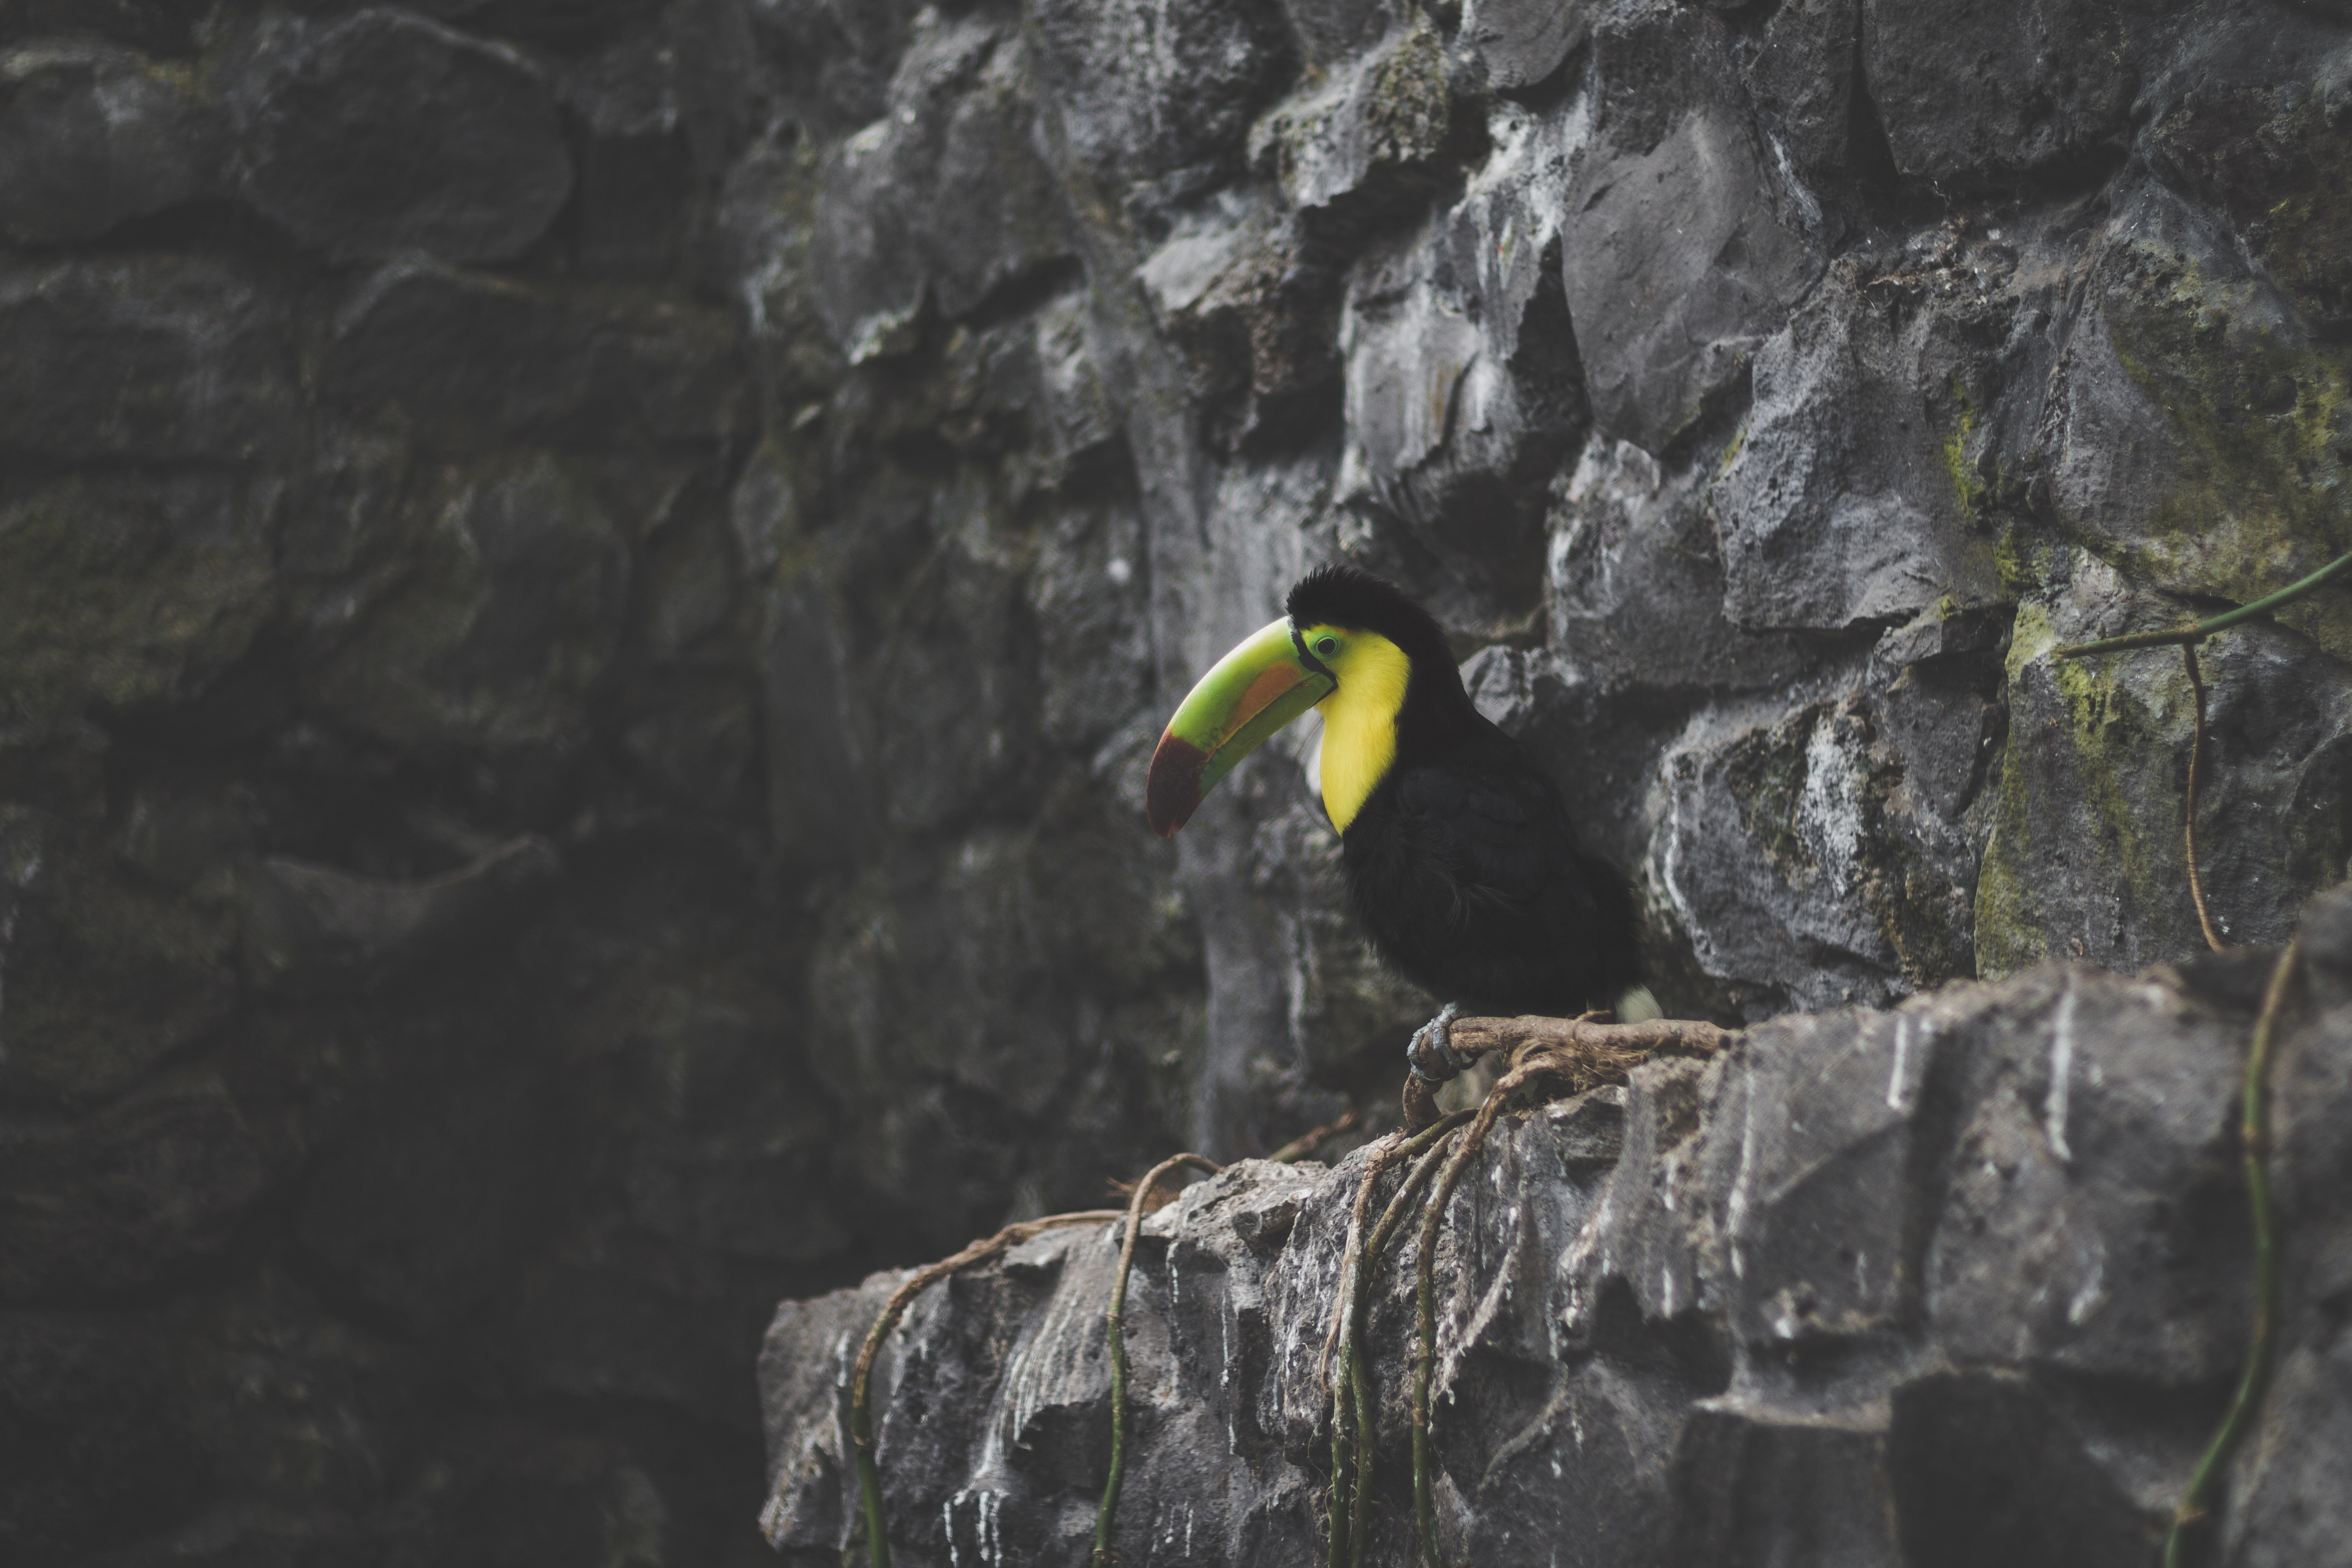 Wild Toucan perched on a rocky cliff